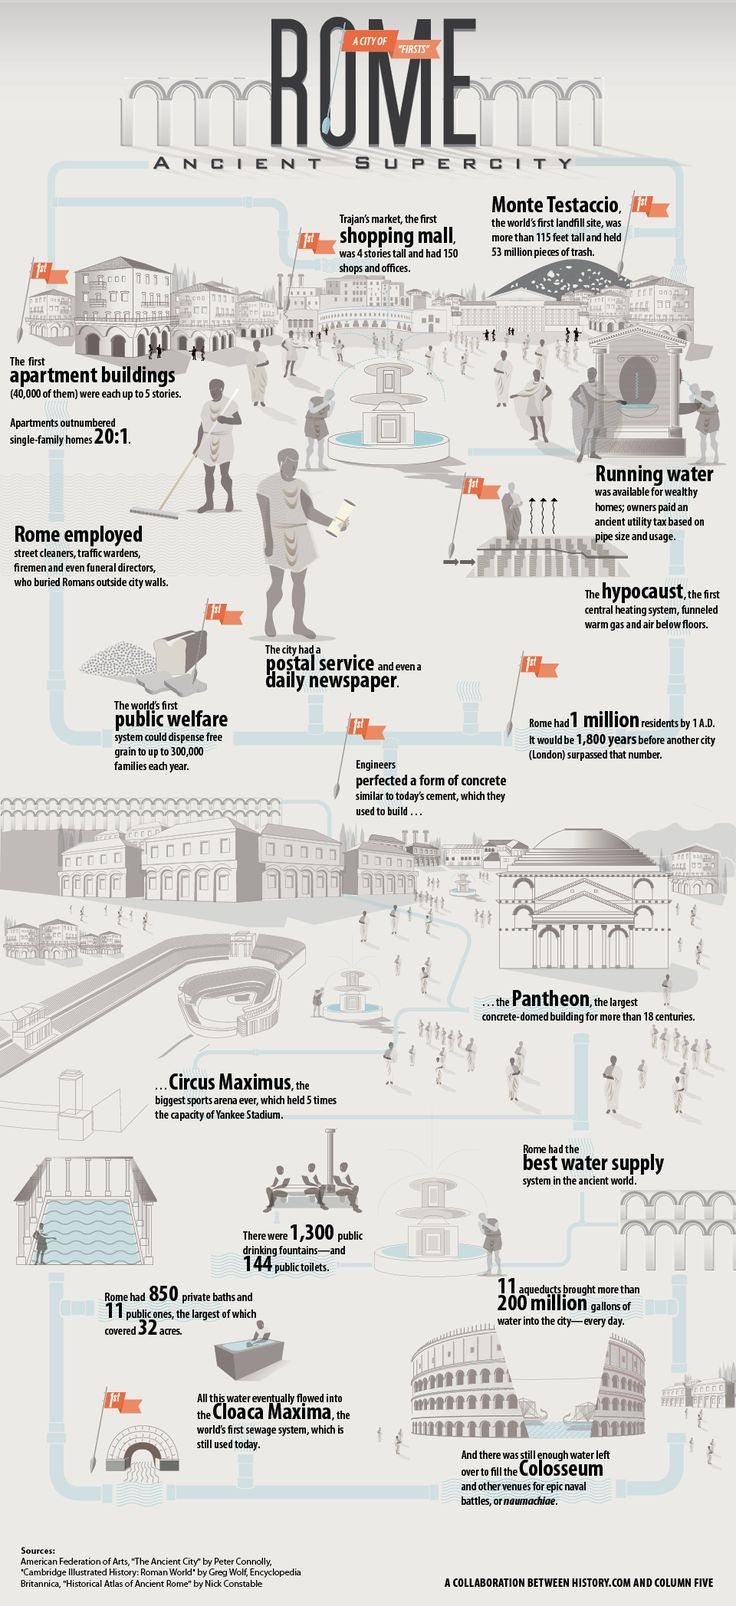 "Ancient Rome: Supercity - a great discussion starter or immersion resource which outlines some of the major 'firsts' of Rome. ""Rome: Ancient Supercity Infographic."" 2014. The History Channel website. Aug 5 2014, 12:13 http://www.history.com/interactives/ancient-rome."